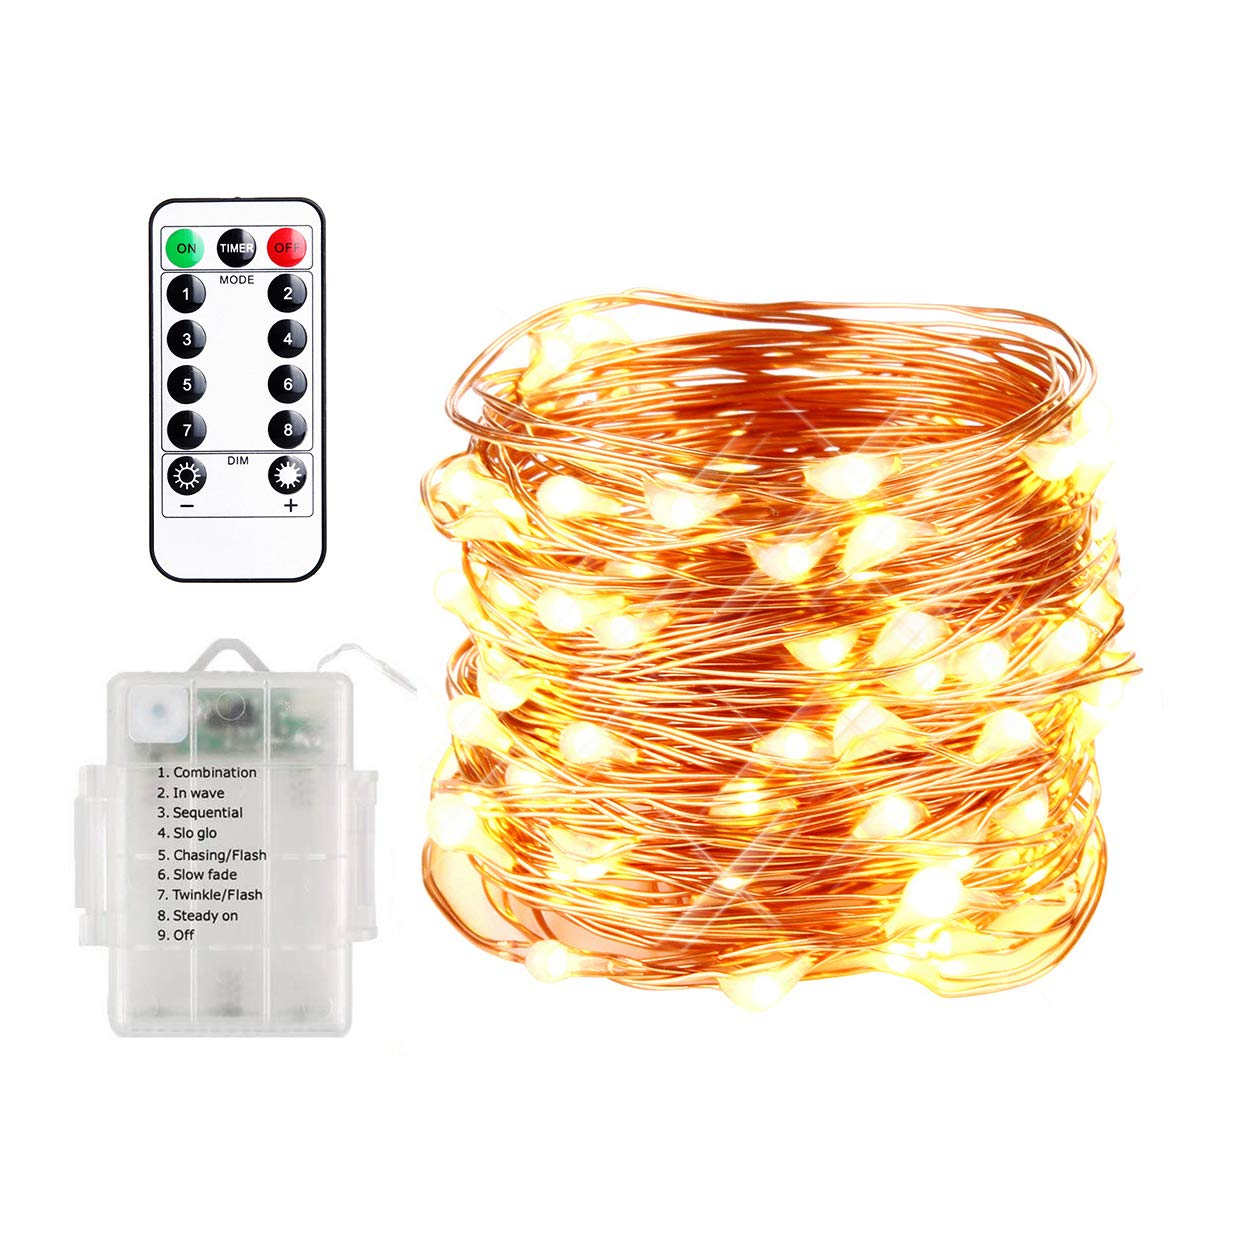 Innotree Led String Lights 33ft 100 Fairy Battery Book Wiring Observation Room 8 Modes Copper Wire With Remote Timer Ip67 Waterproof Decoration For Bedroom Patio Indoor Outdoor Warm White